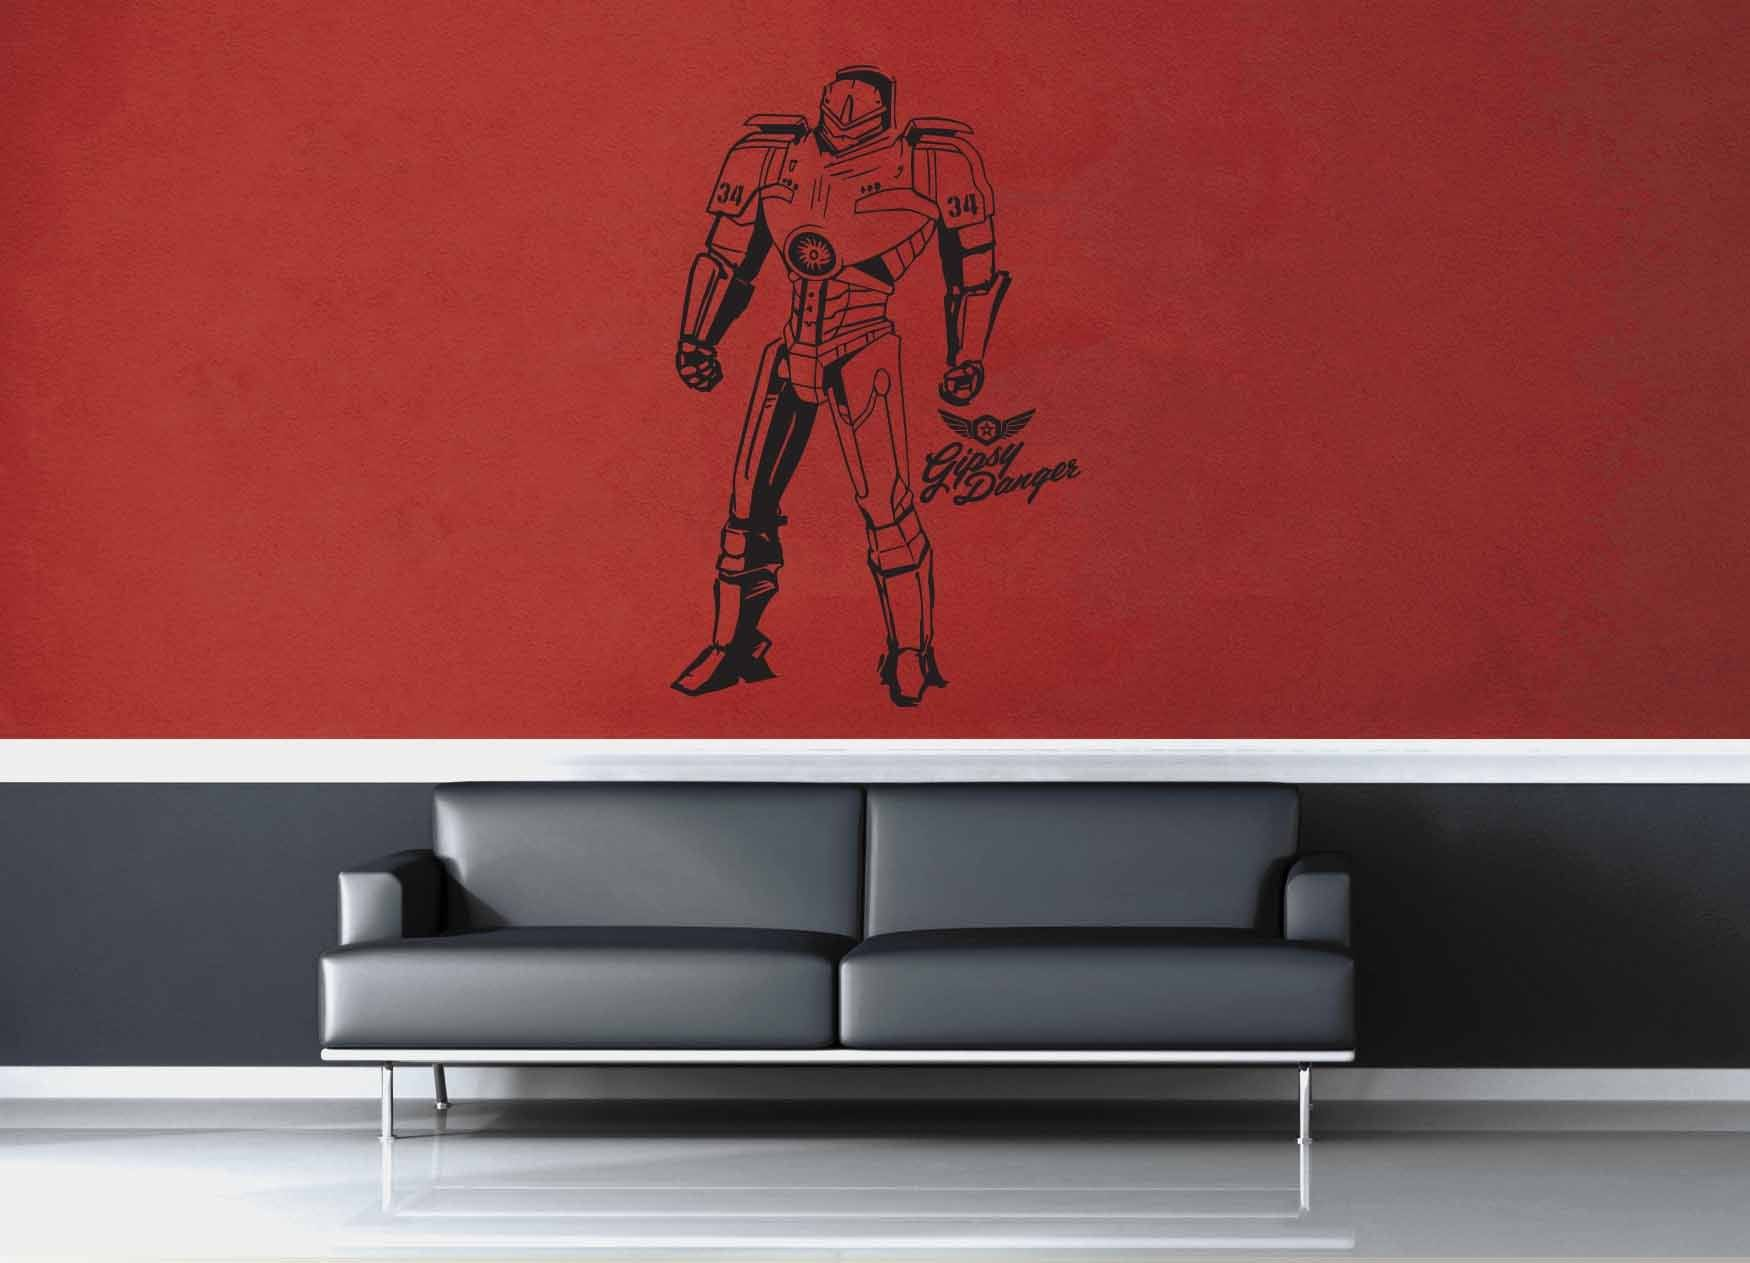 Gypsy Danger - Pacific Rim - Wall Decal